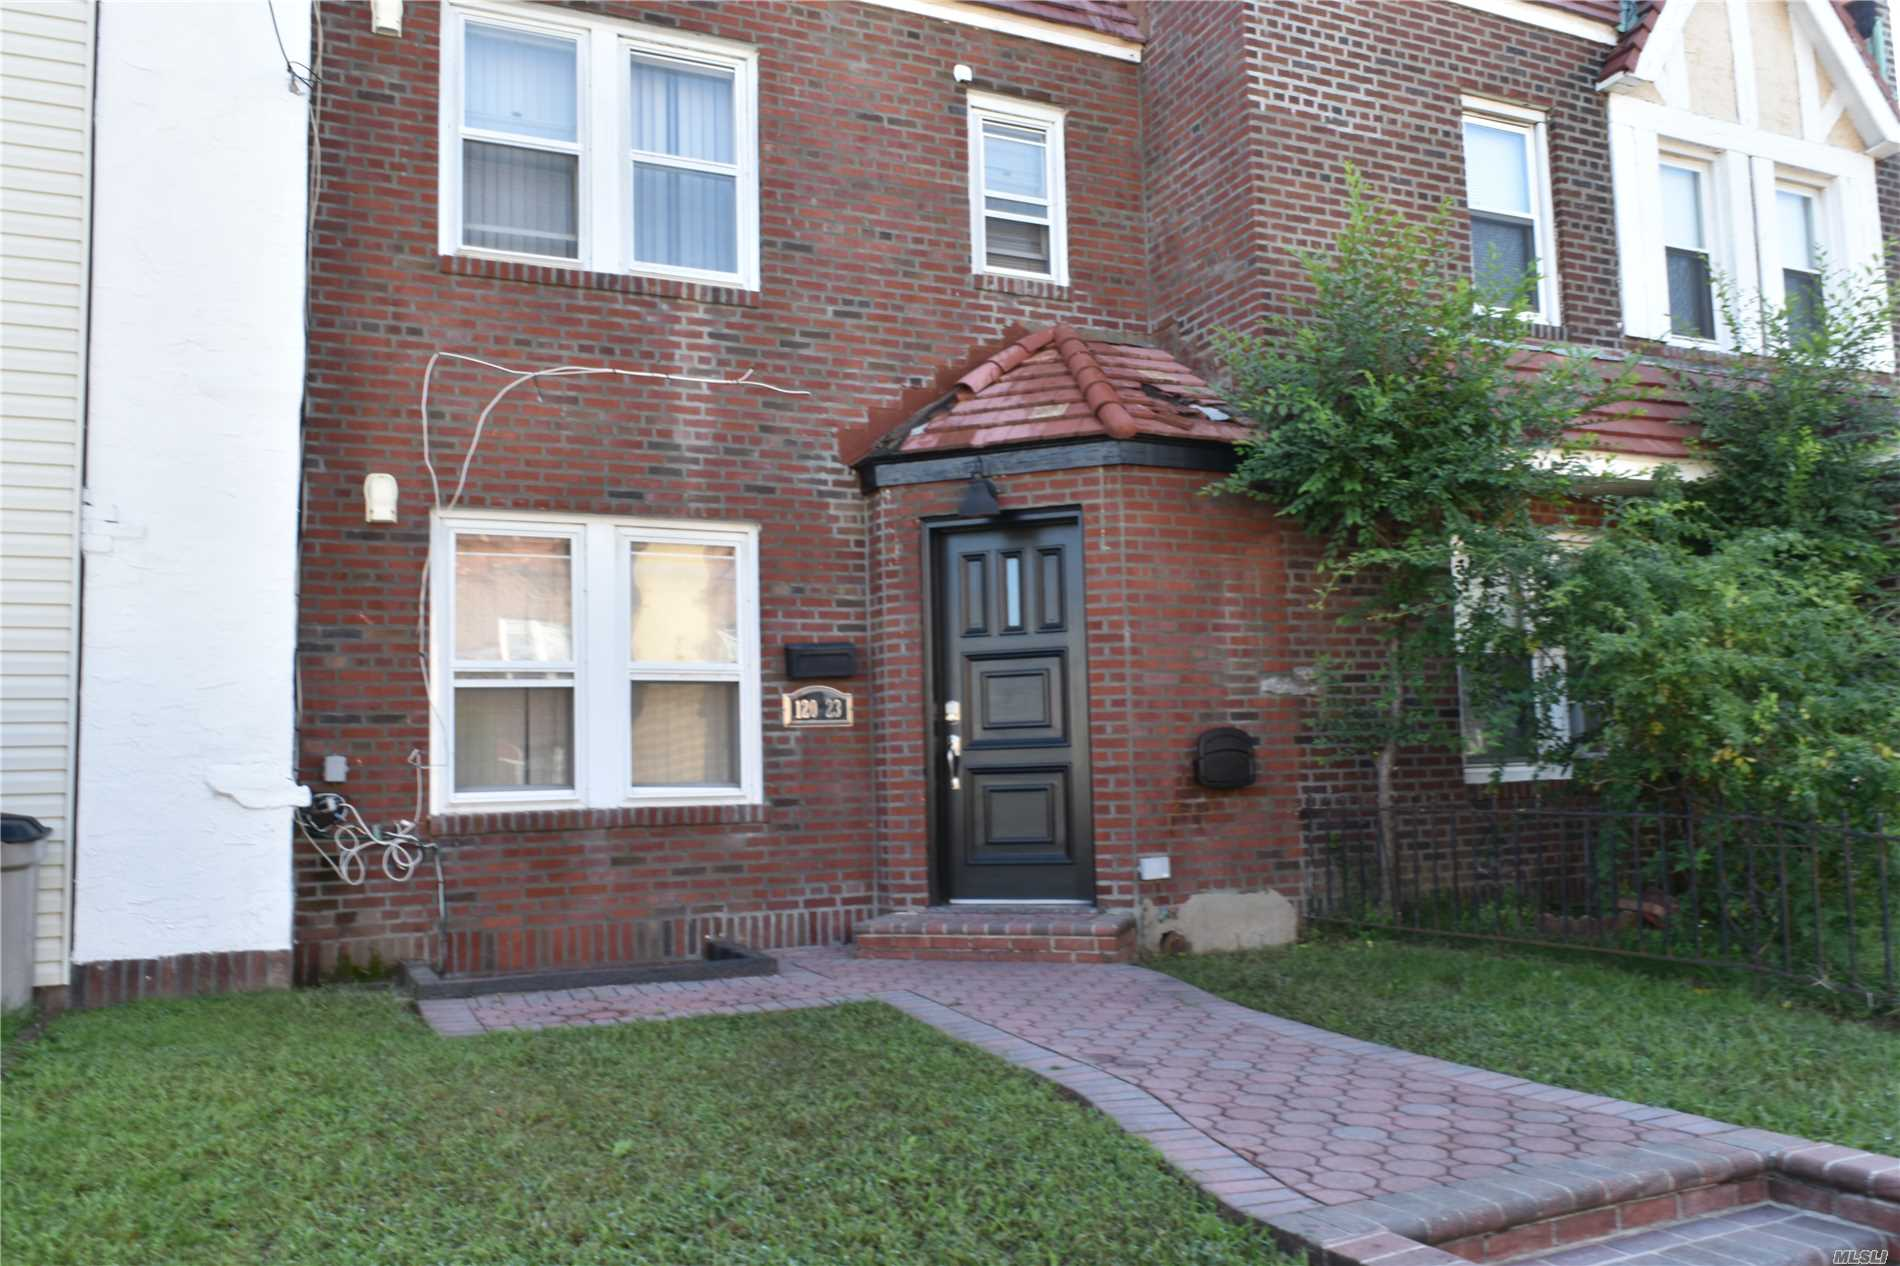 Meticulously Maintained Attached Brick Colonial Feat. Energy Efficient 4 Zone Mini Split System For Heating & Cooling! Custom Doors & Wood Work Throughout! New Stainless Steel Appliances! Motivated Seller! A Must See!